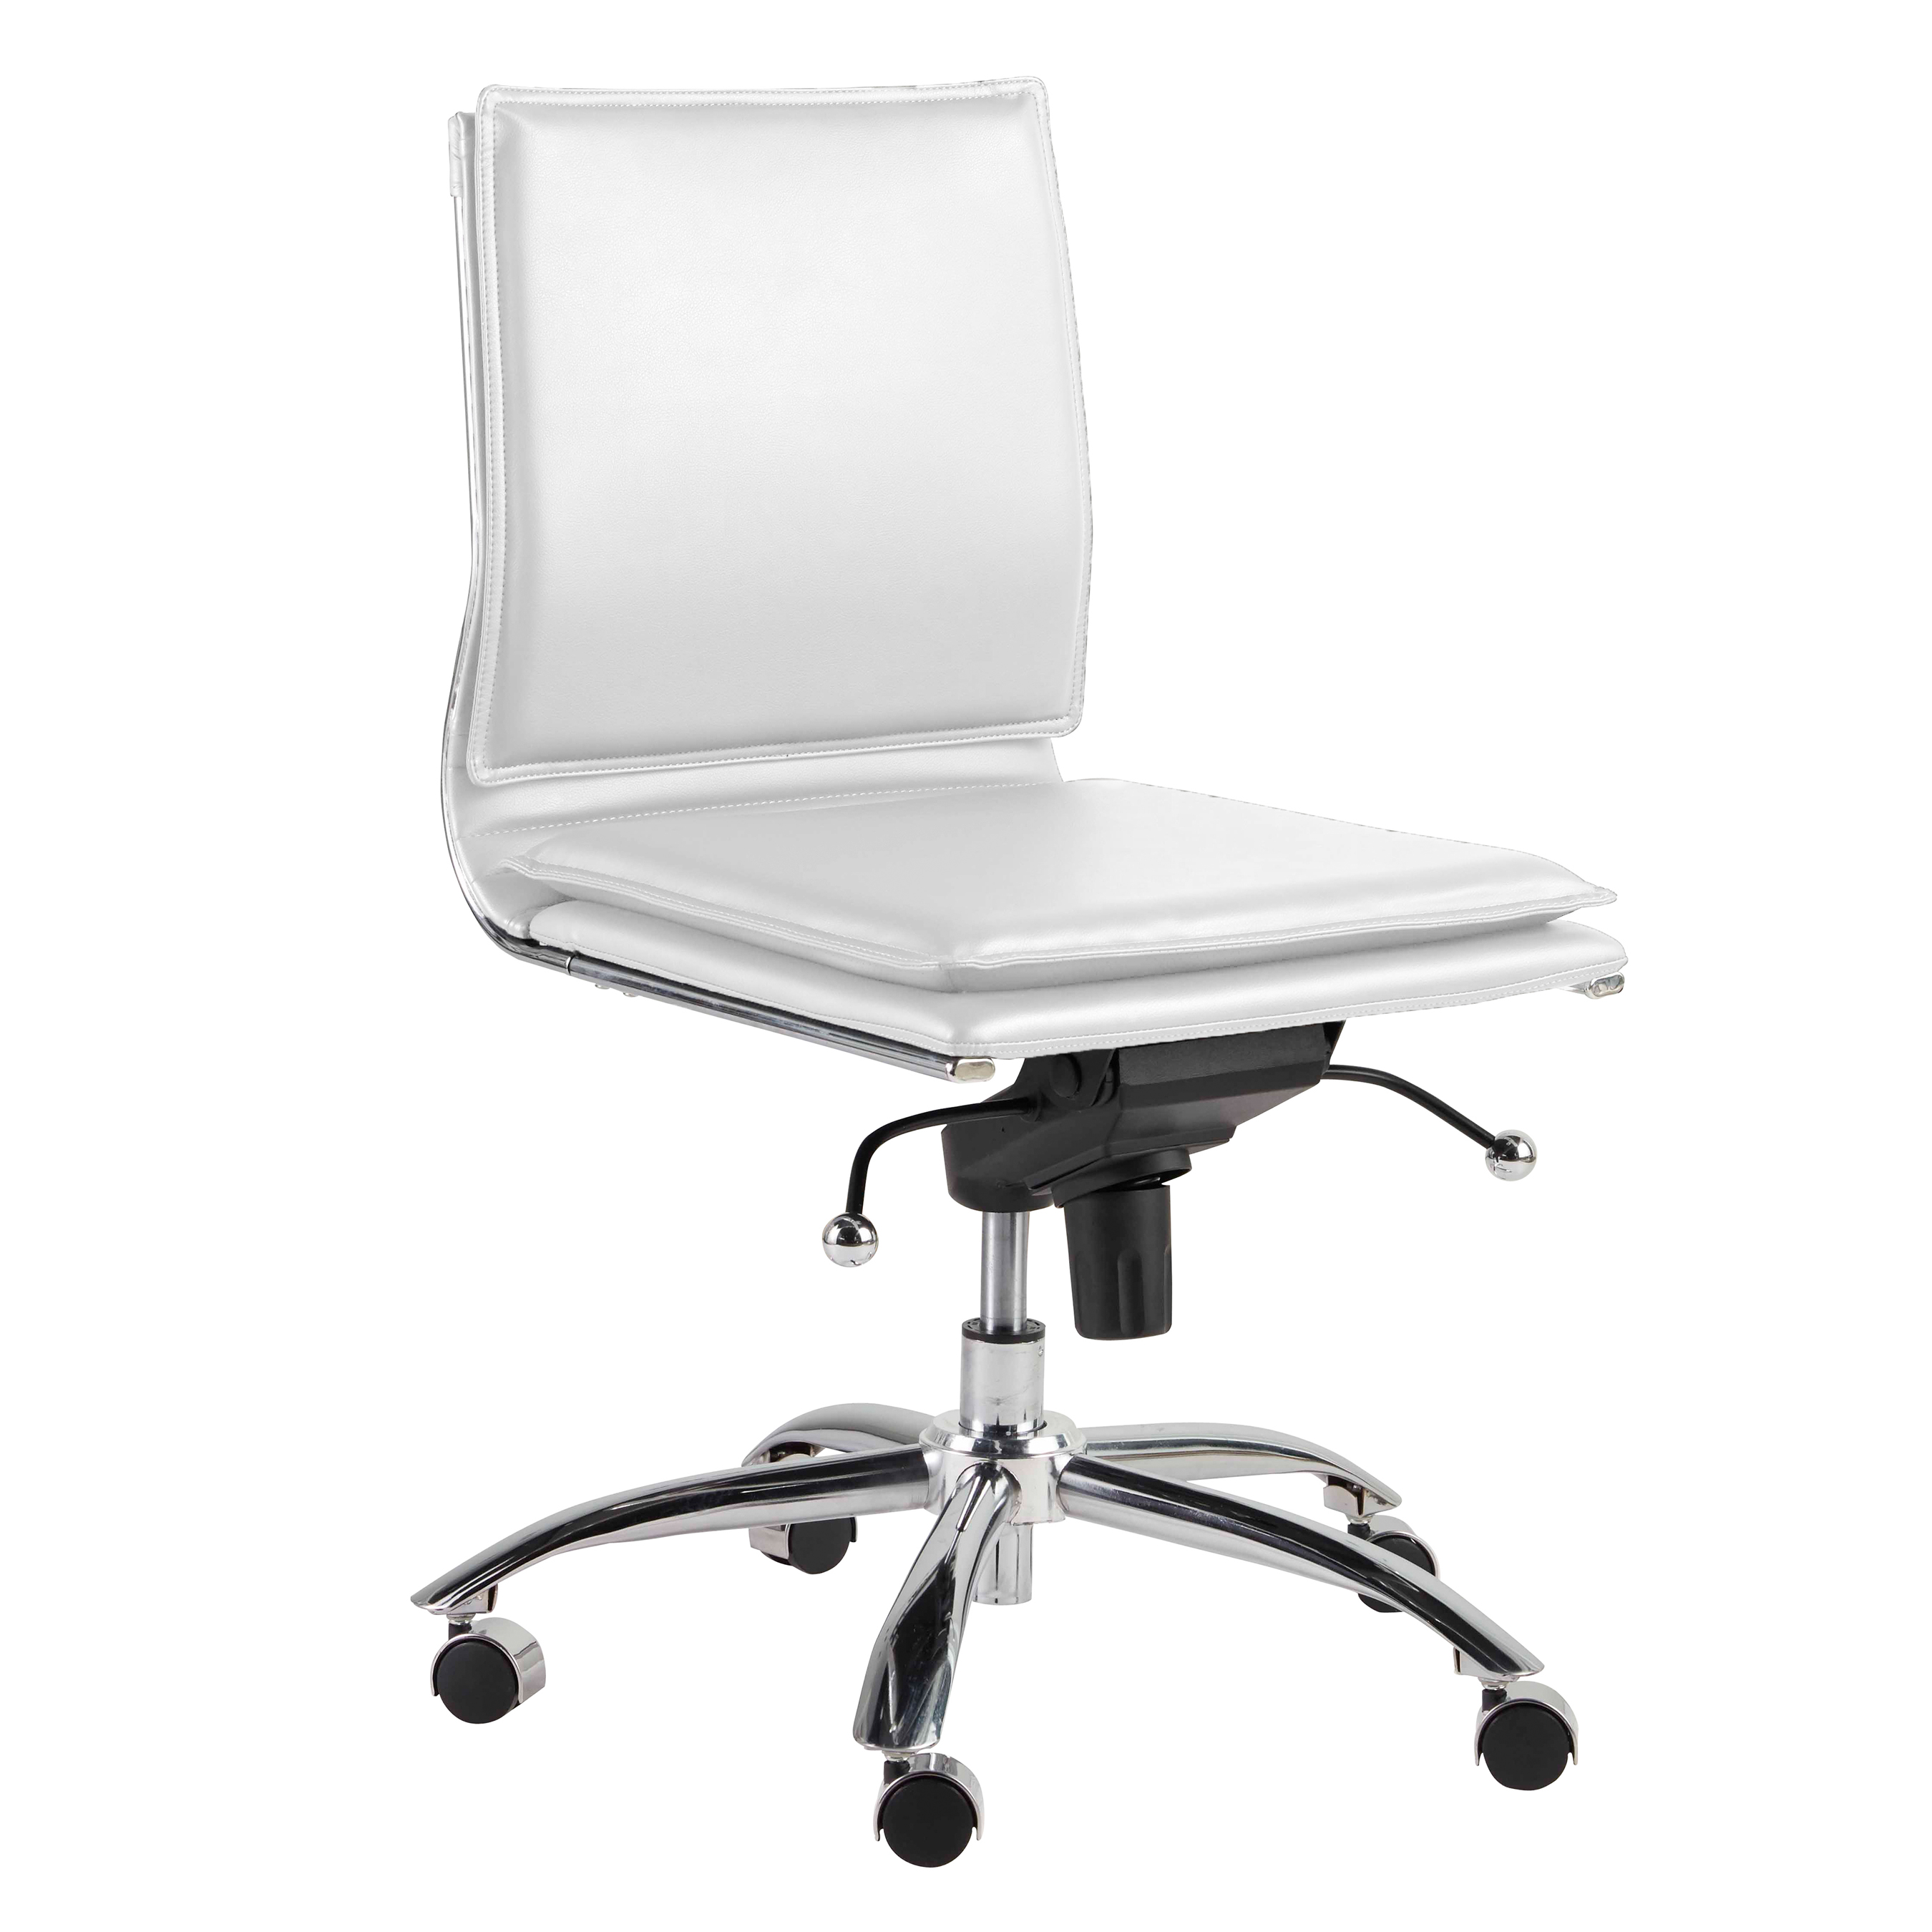 Gunar Pro Low Back Armless Office Chair 01273wht Furniture